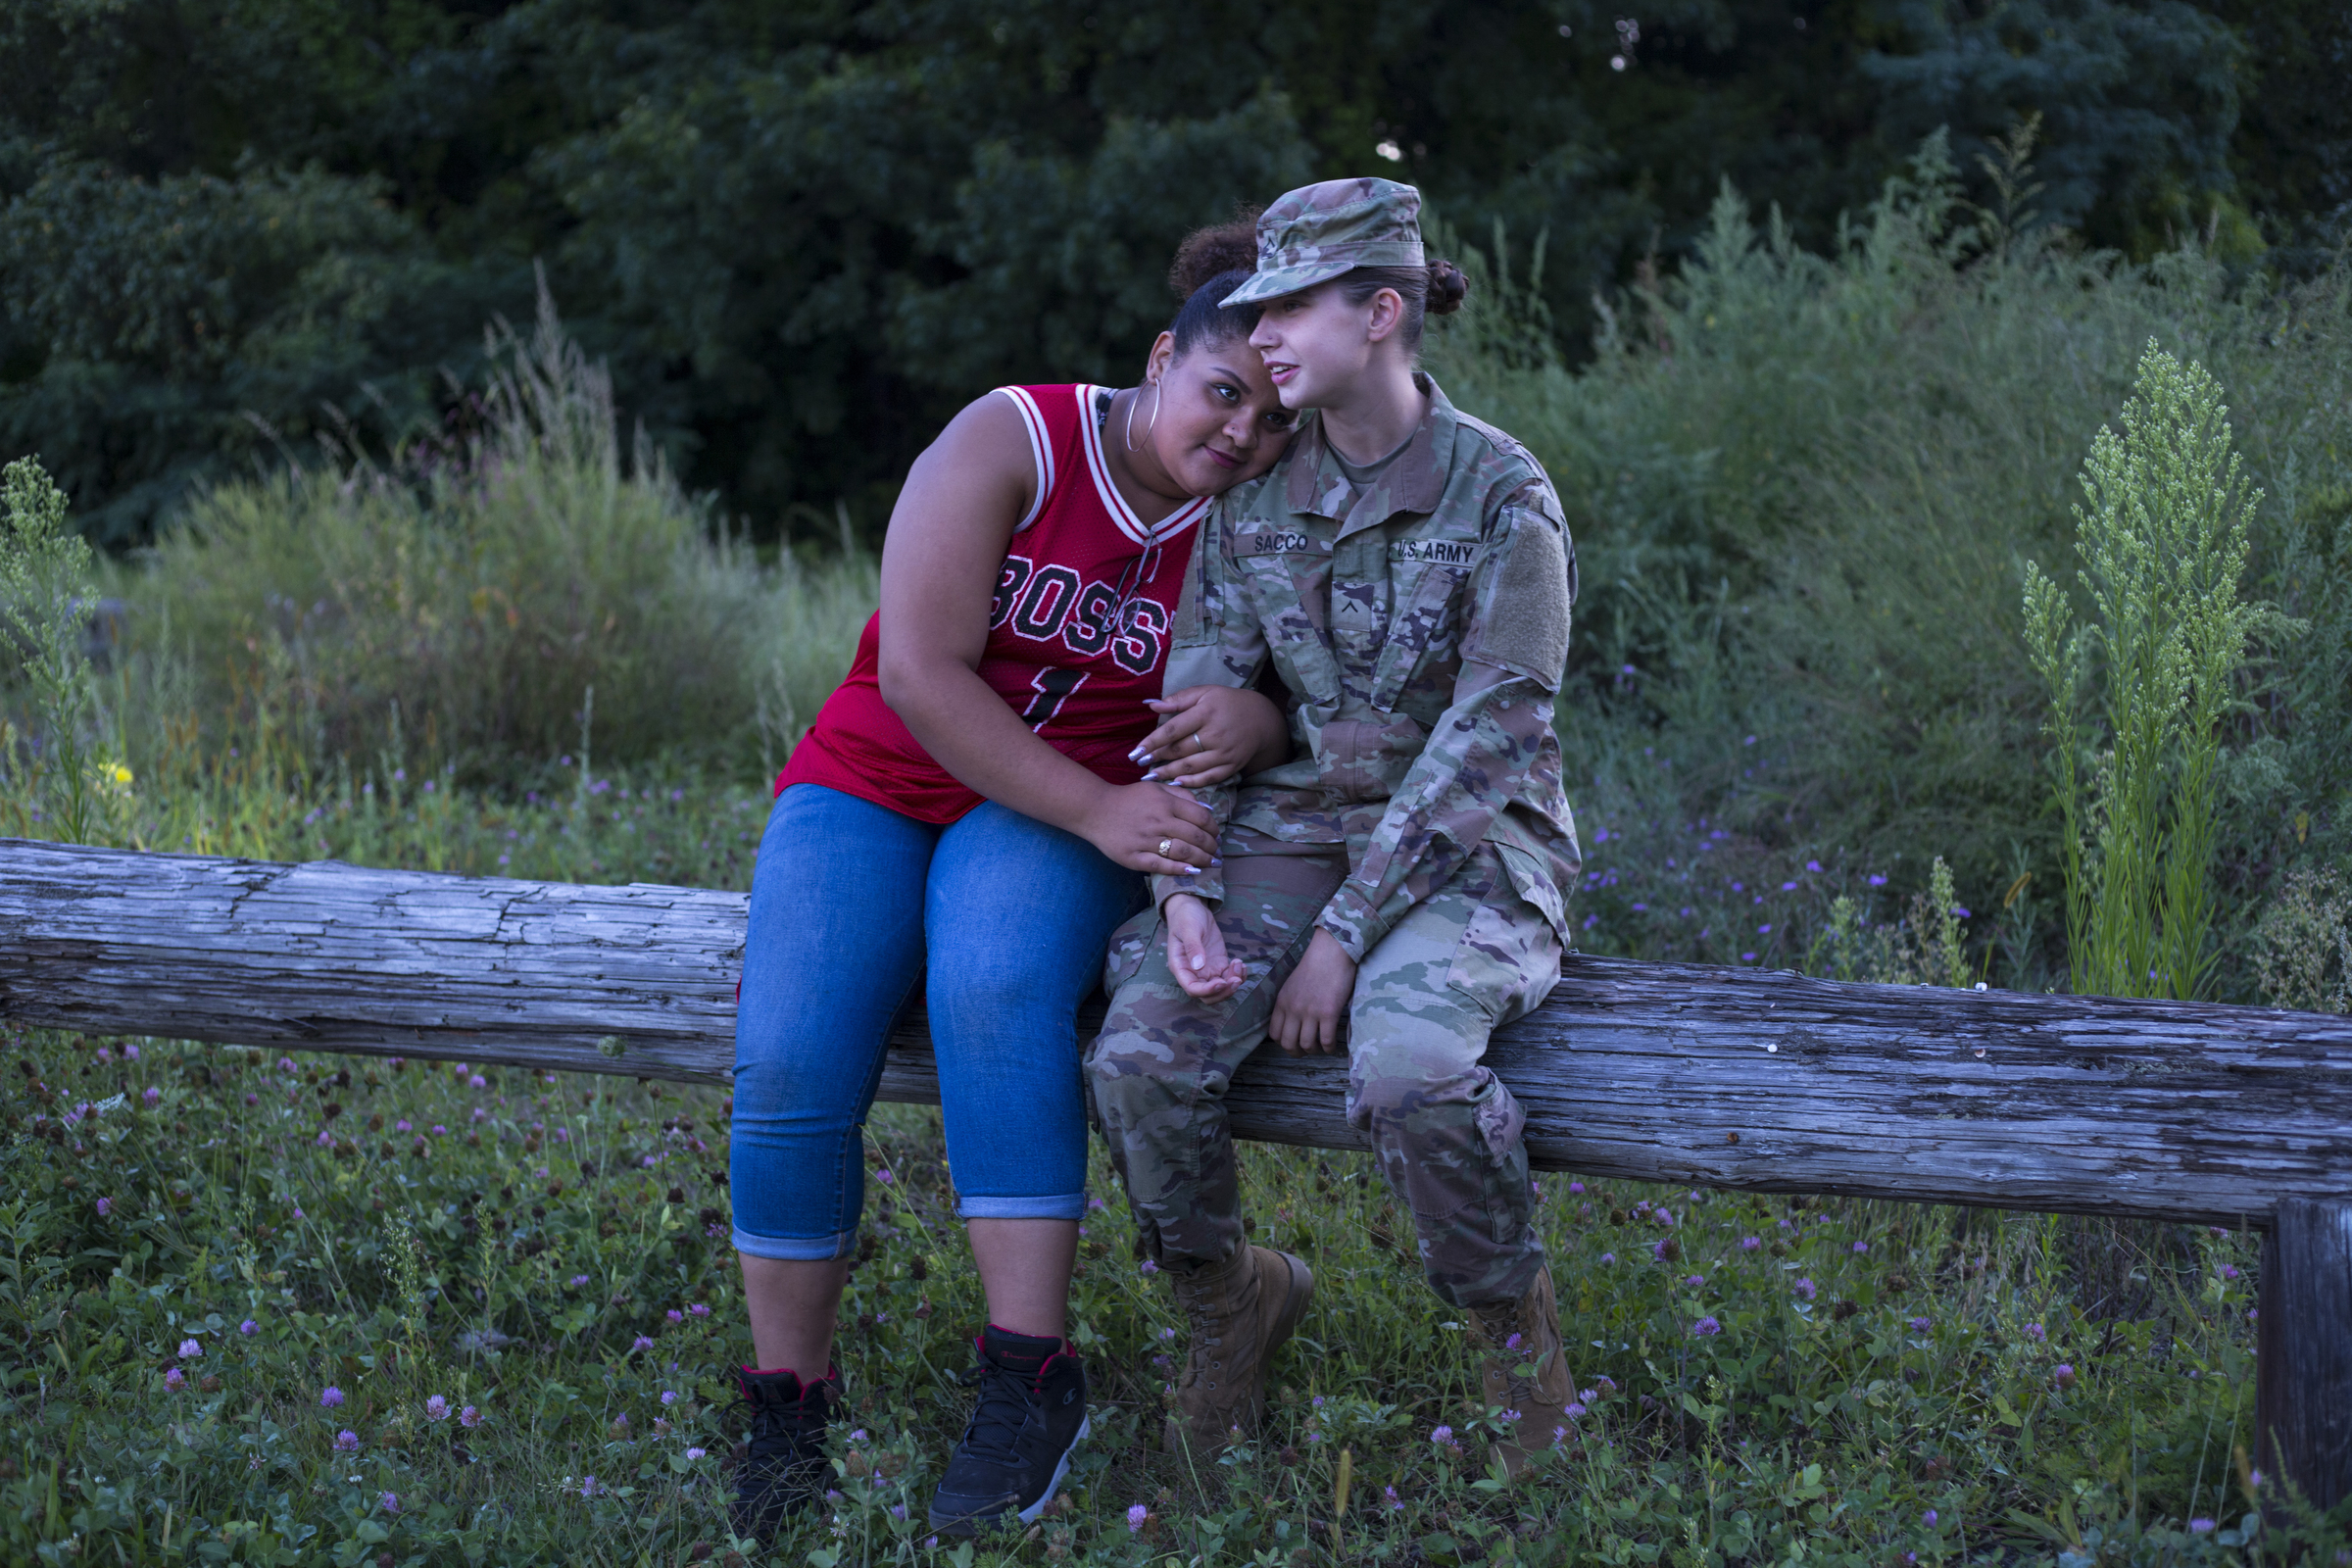 Destiny Montez, 17, with her girlfriend, Jenny Sacco, 17, at the Agawam Dog Park where they took Jenny's dog and hung out with friends in Agawam, Mass., on Saturday, September, 9, 2017. The pair have been together for two years and have hopes of moving in together following high school. When Destiny first came out to her mother she was disowned by her and has faced bullying at school for her sexuality.